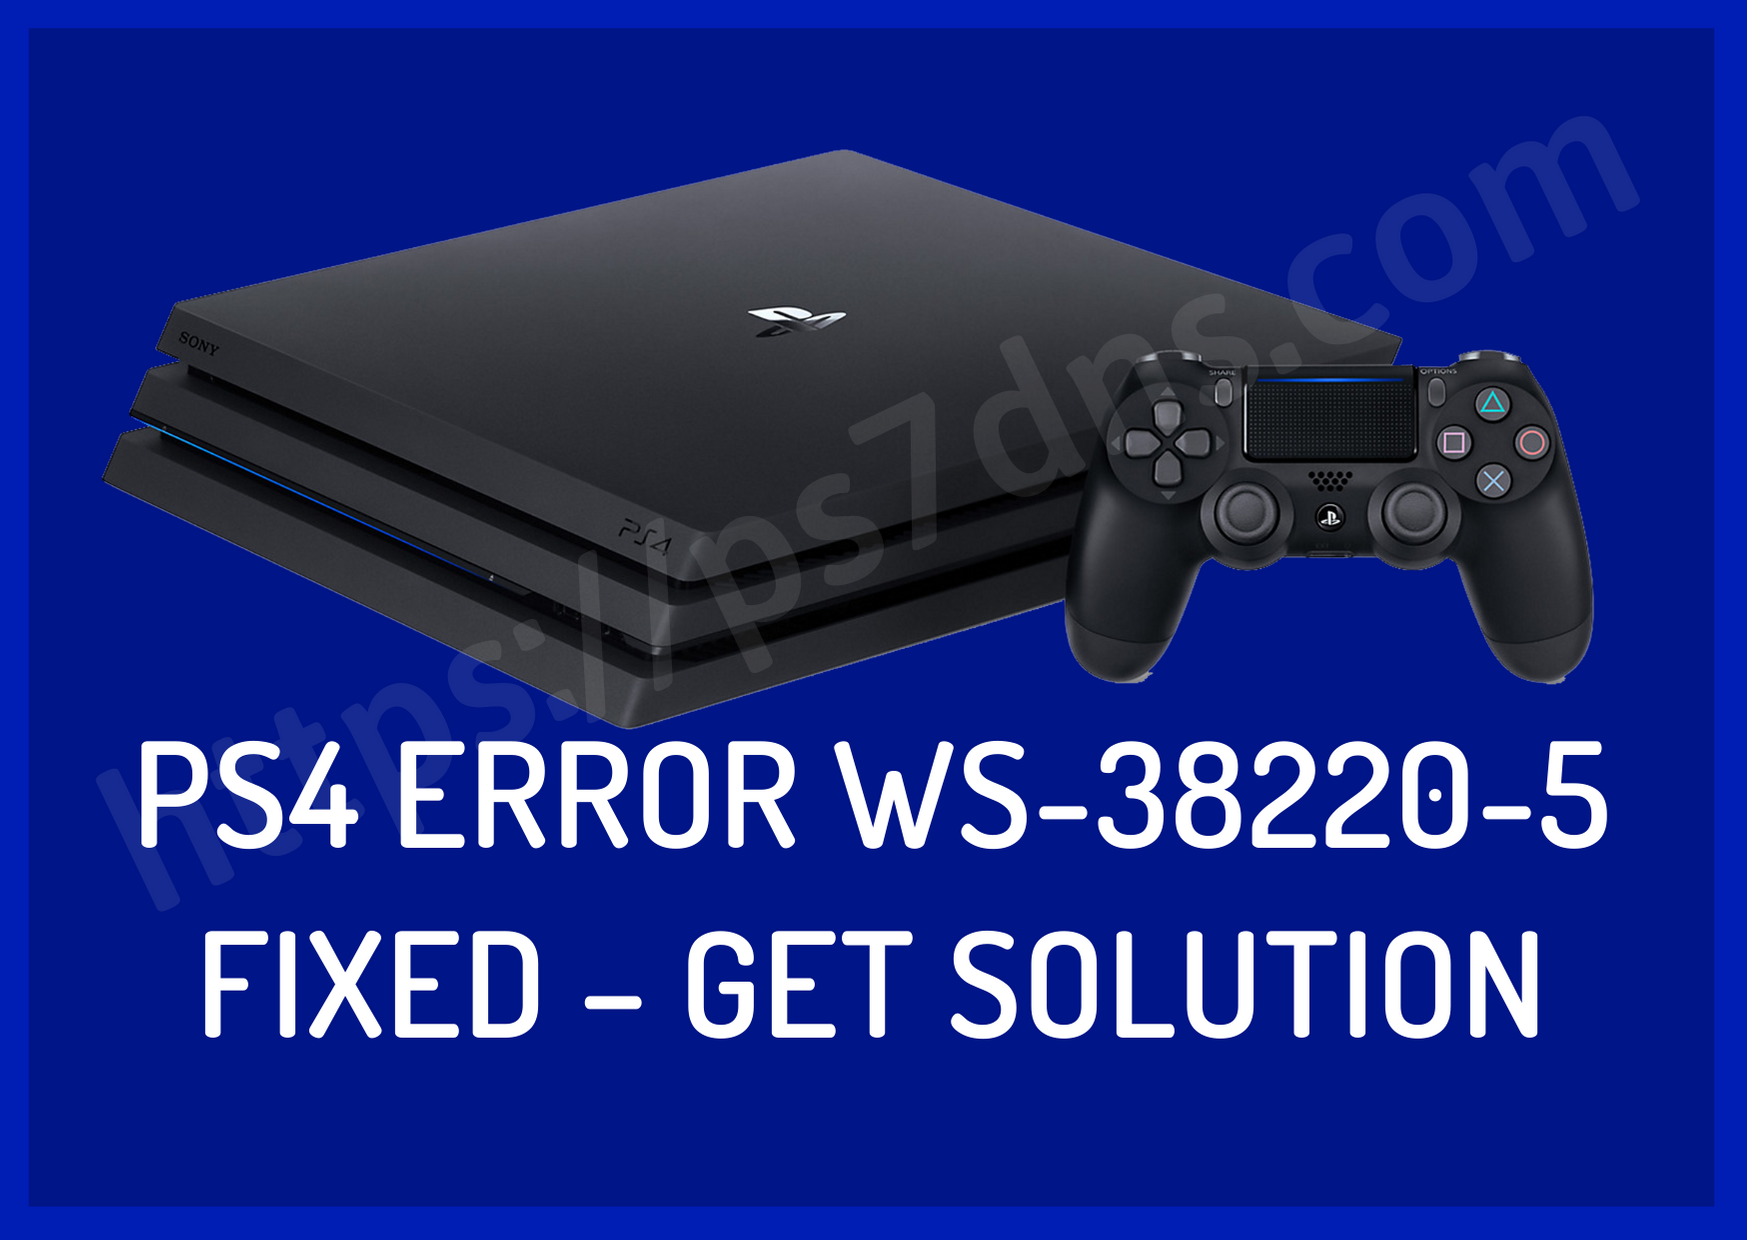 PS4 Error WS-38220-5 Fixed – Get Solution